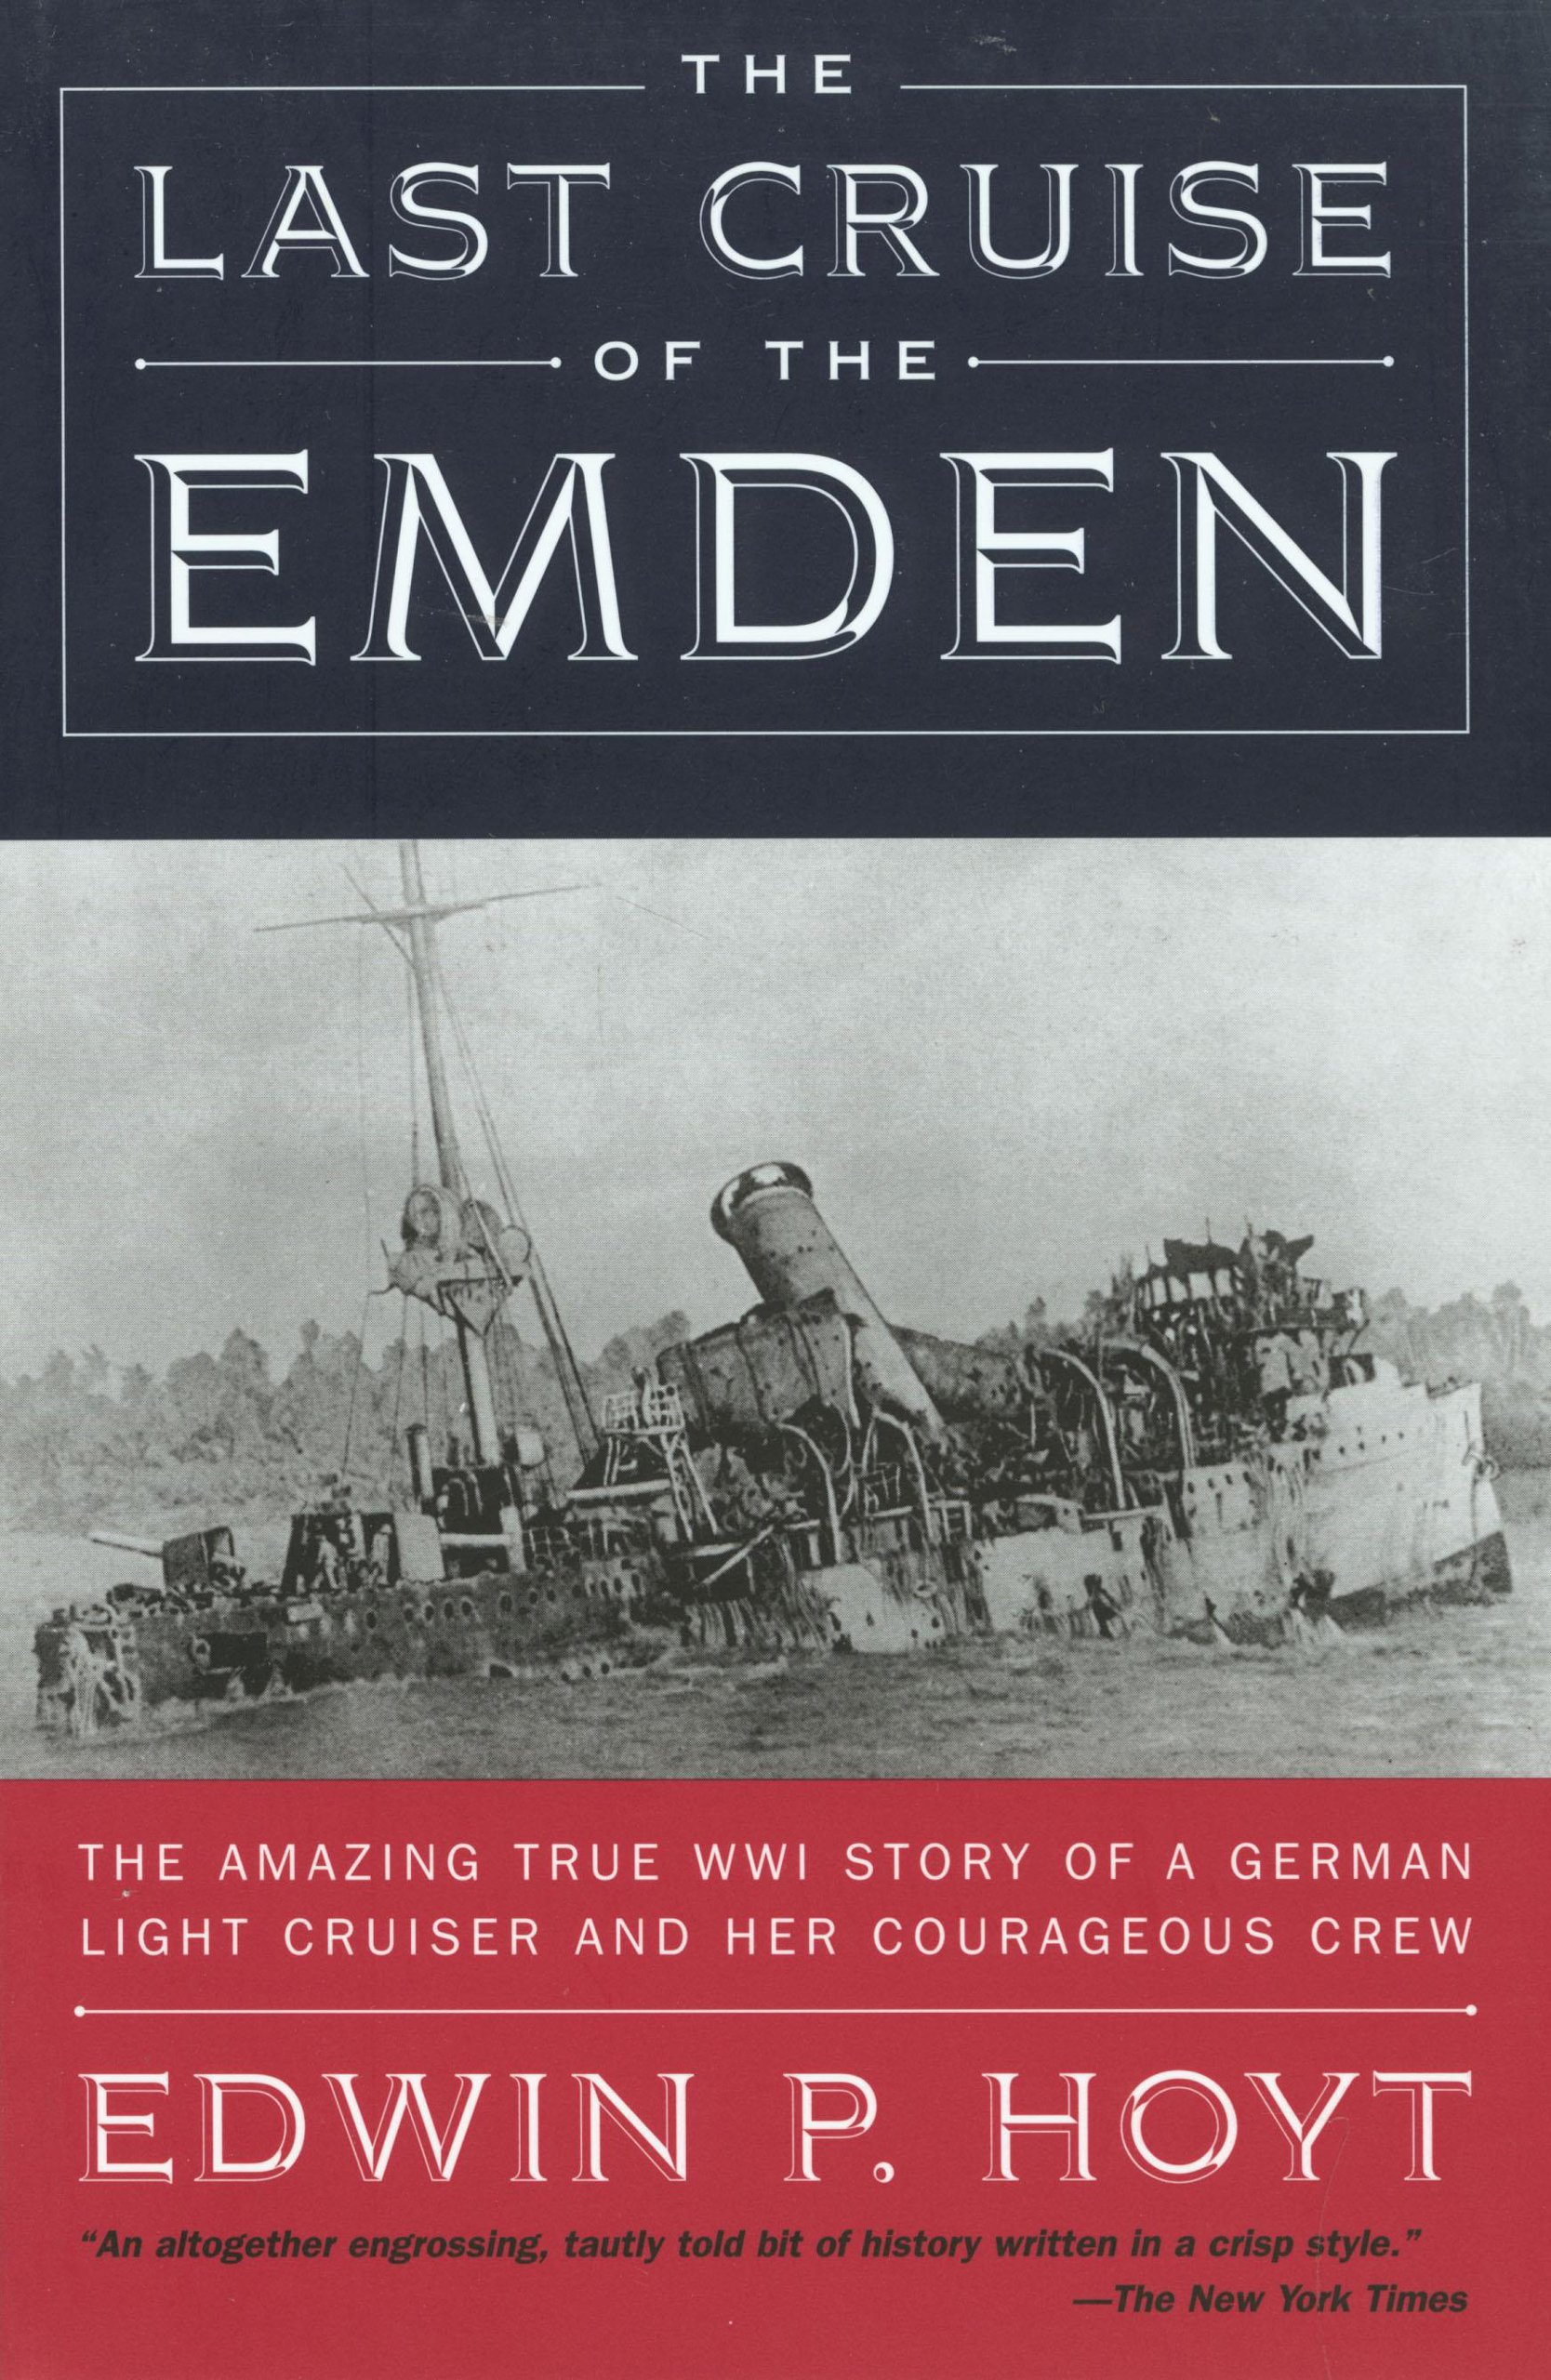 The Last Cruise of the Emden: The Amazing True WWI Story of a German-Light Cruiser and Her Courageous Crew pdf epub